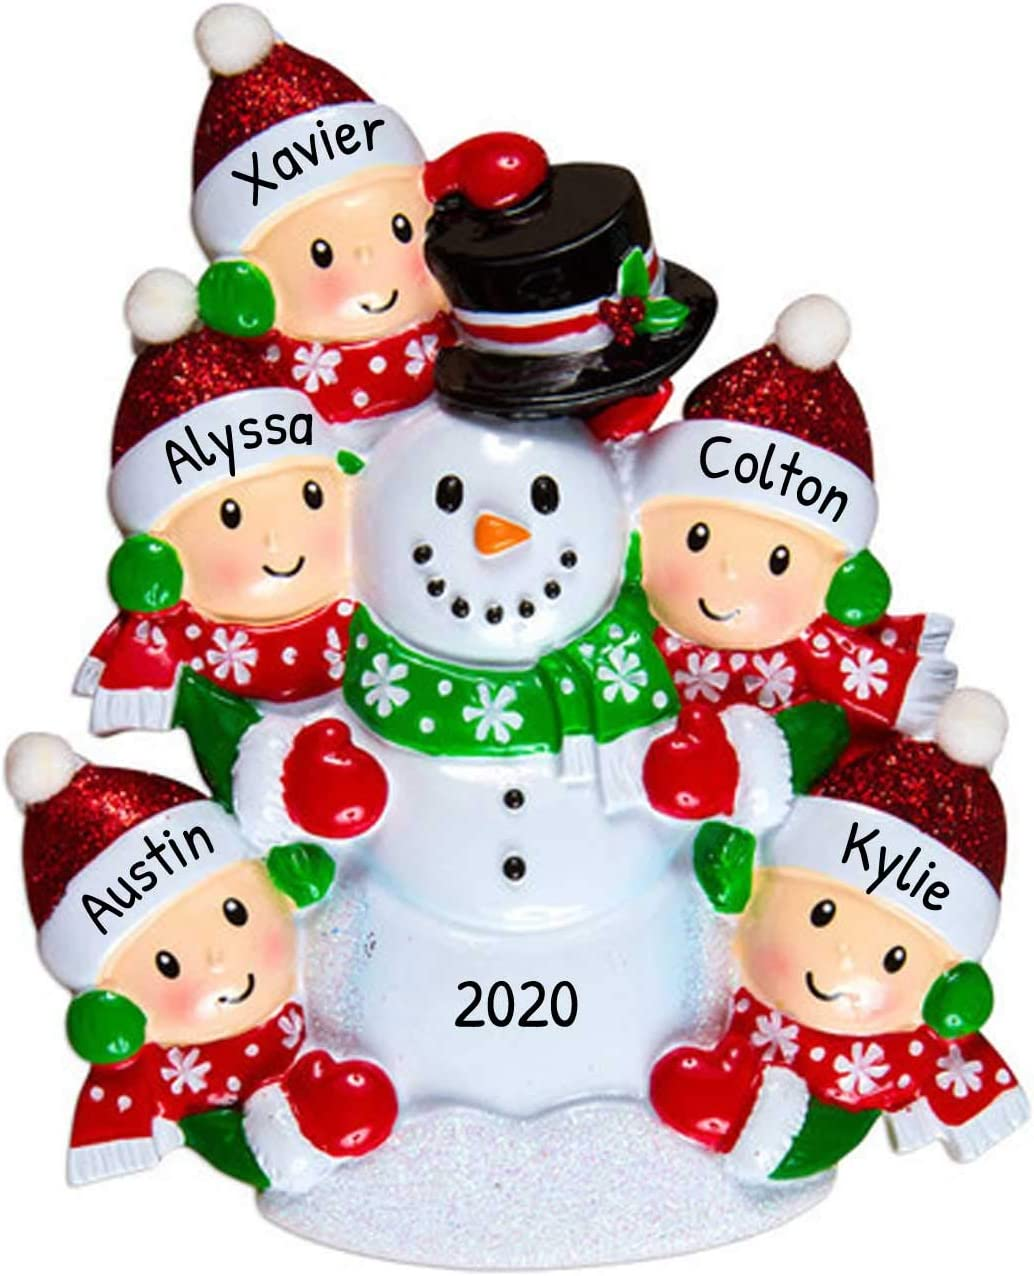 Building Christmas Decorations 2020 Amazon.com: Personalized Building Snowman Family of 5 Christmas